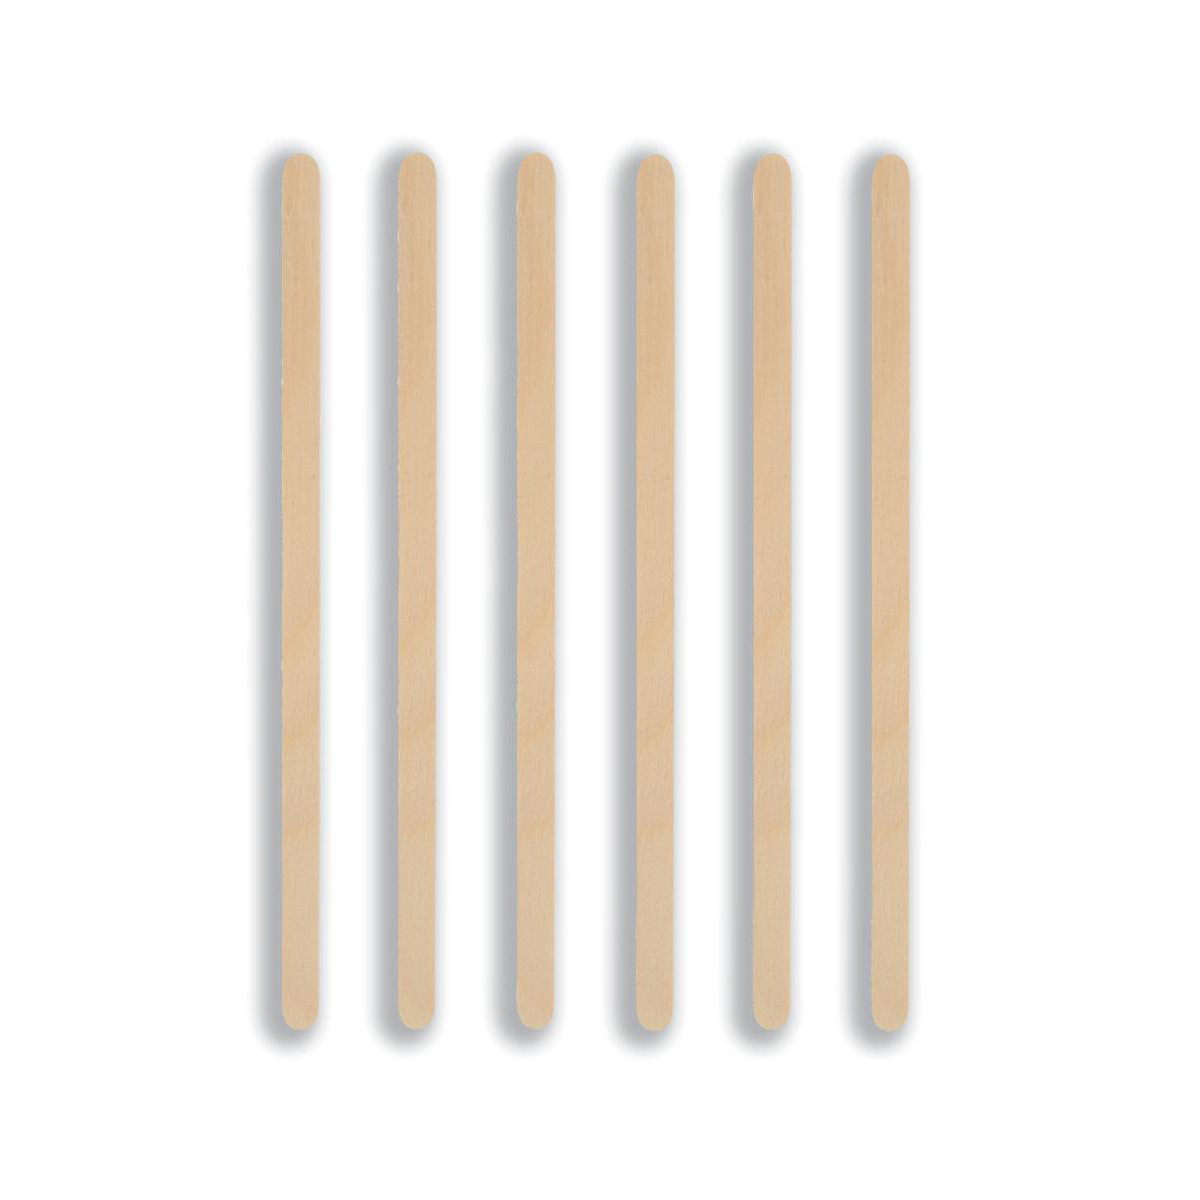 Stirrers Wooden 190mm Pk1000